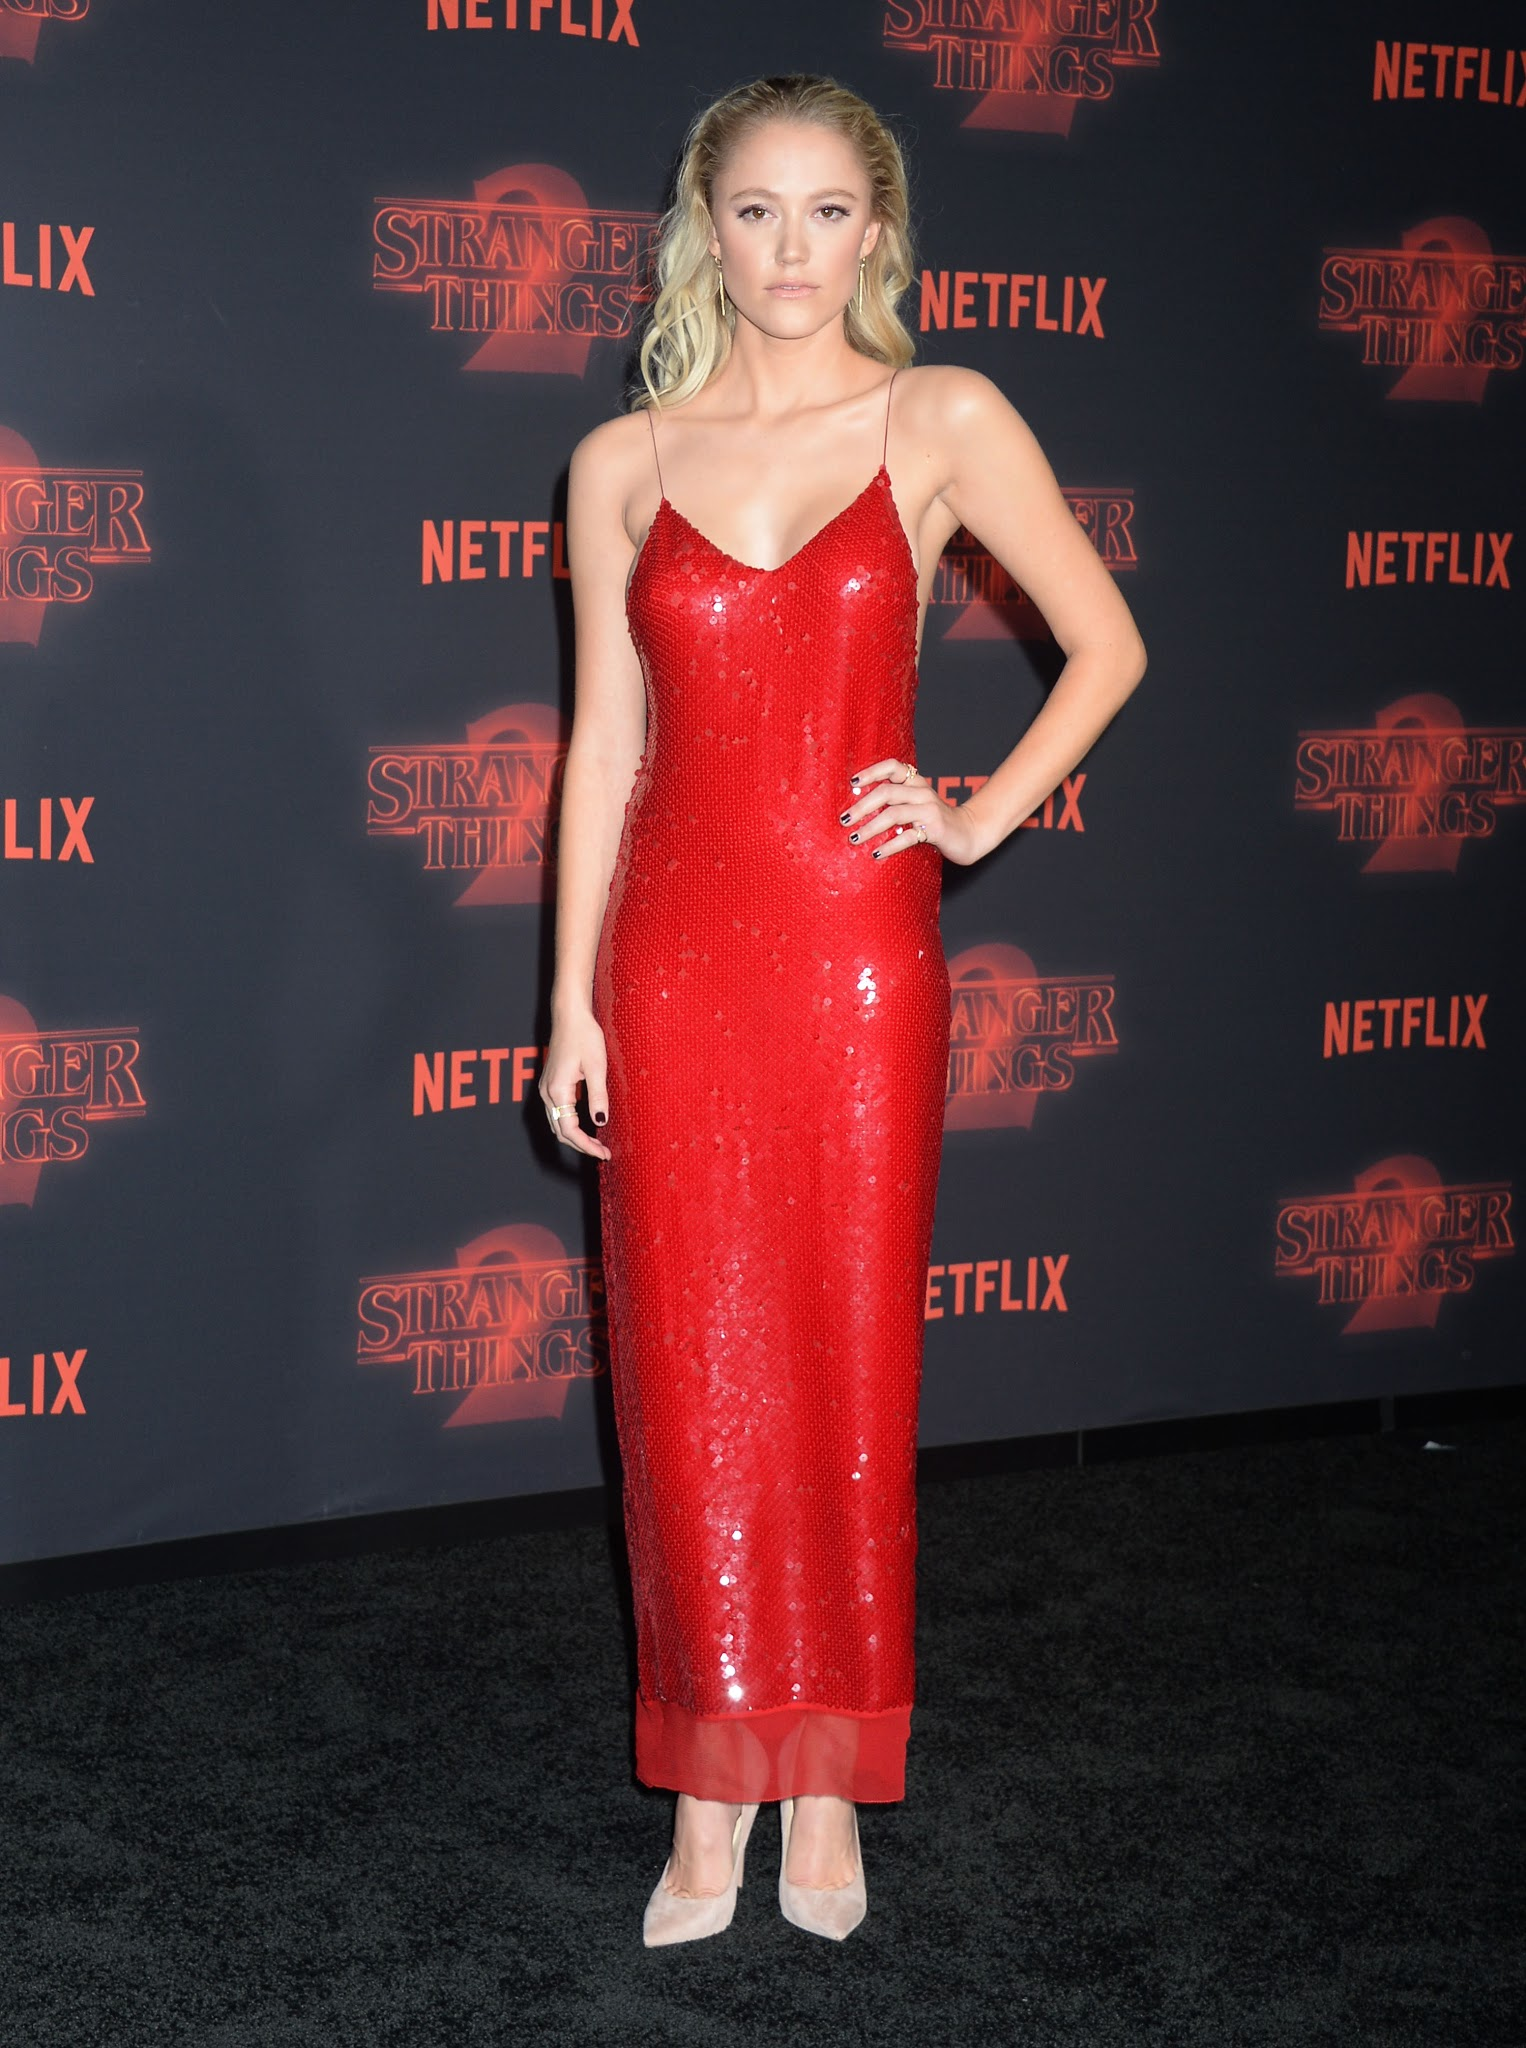 Cleavage Maika Monroe nudes (85 photo), Tits, Is a cute, Twitter, braless 2006